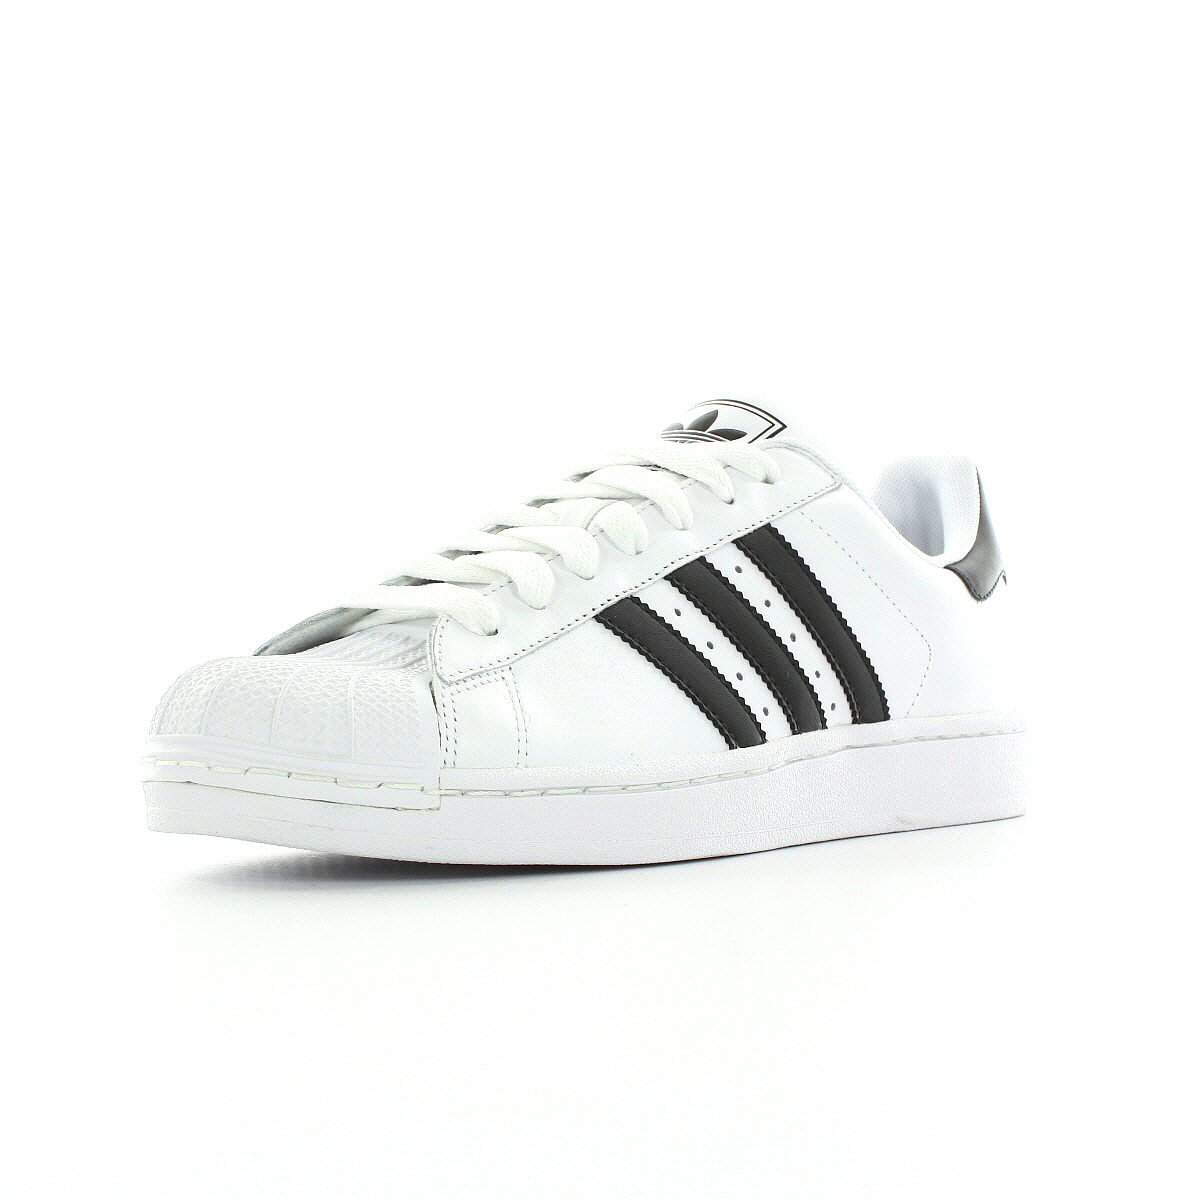 chaussures baskets adidas homme superstar 2 taille blanc blanche cuir lacets. Black Bedroom Furniture Sets. Home Design Ideas